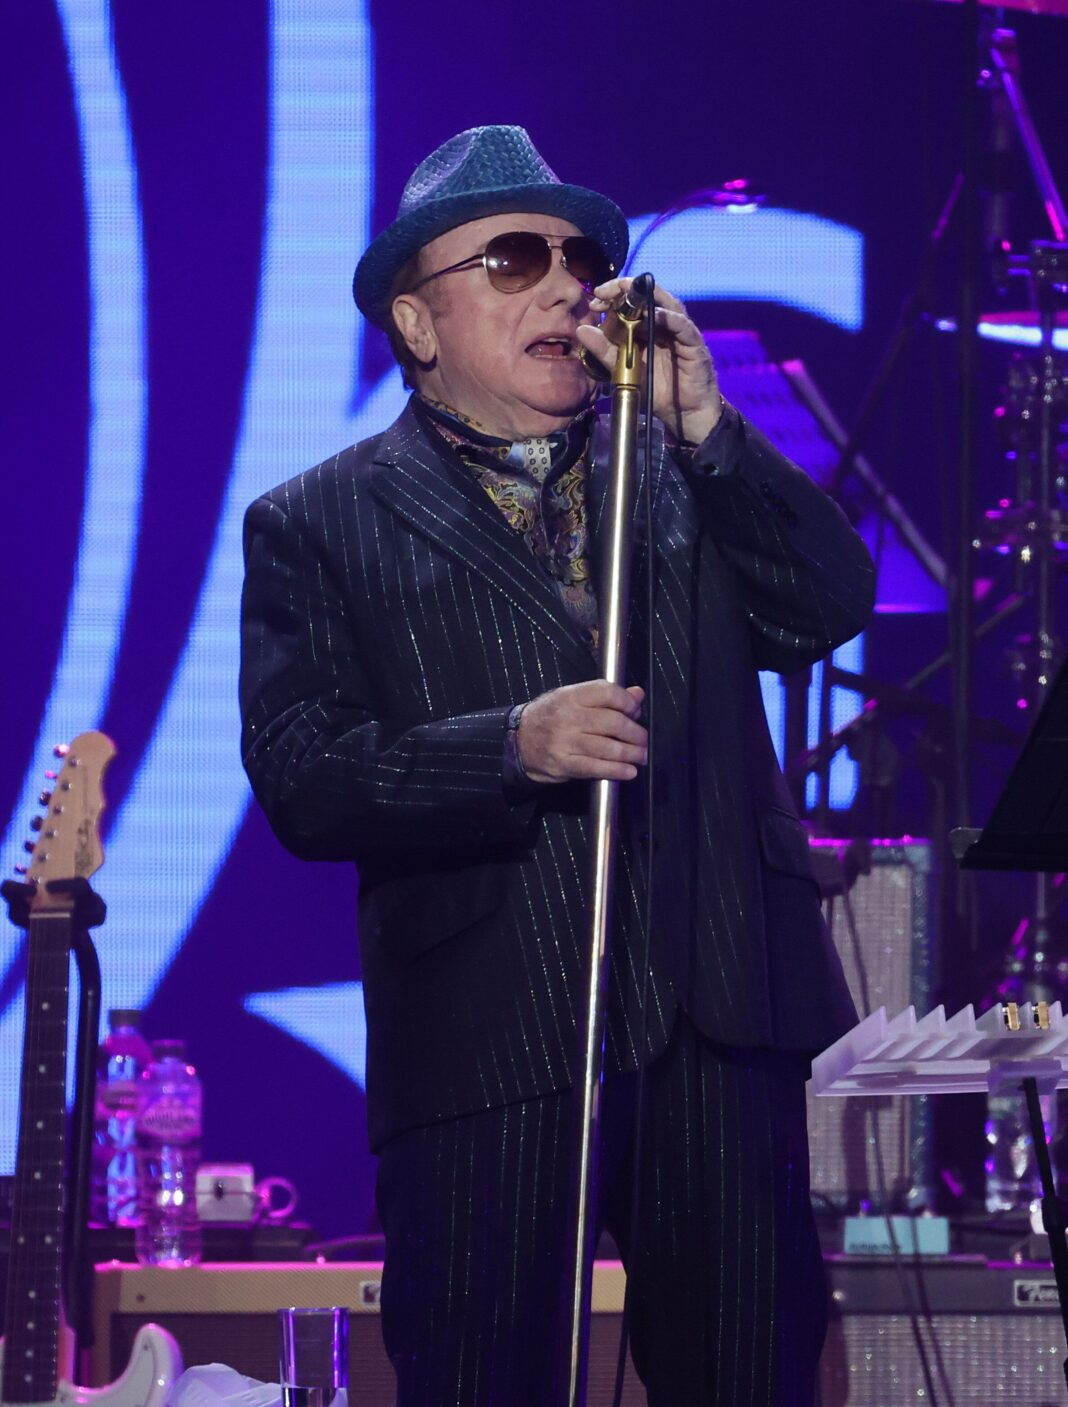 US news: Twitter Users Not Impressed With Van Morrison's Anti-Lockdown Anthems